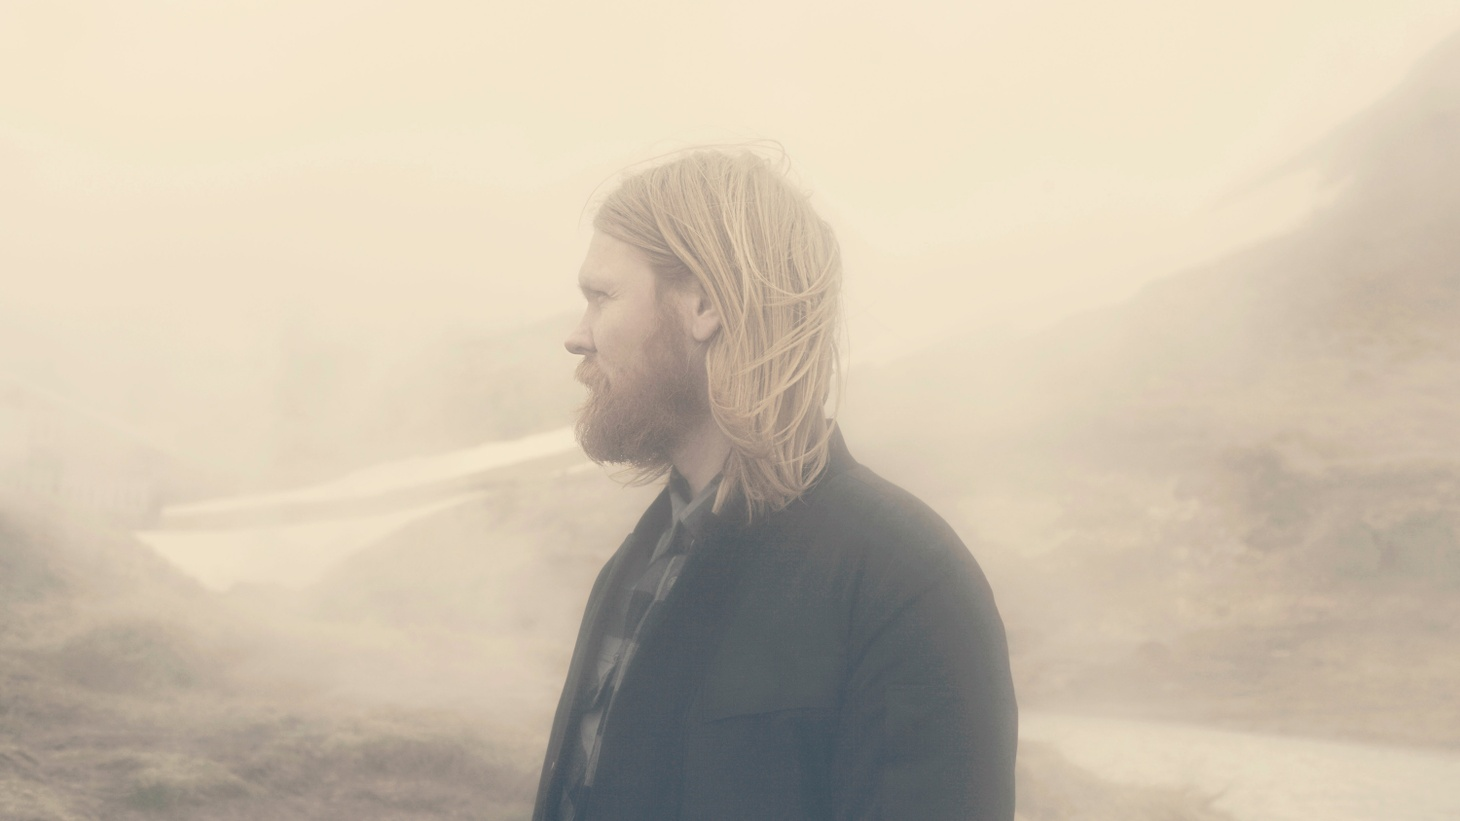 Just last month, Icelander Júníus Meyvant unleashed his music via a full length debut in his homeland, capturing many Nordic countries with his sound.